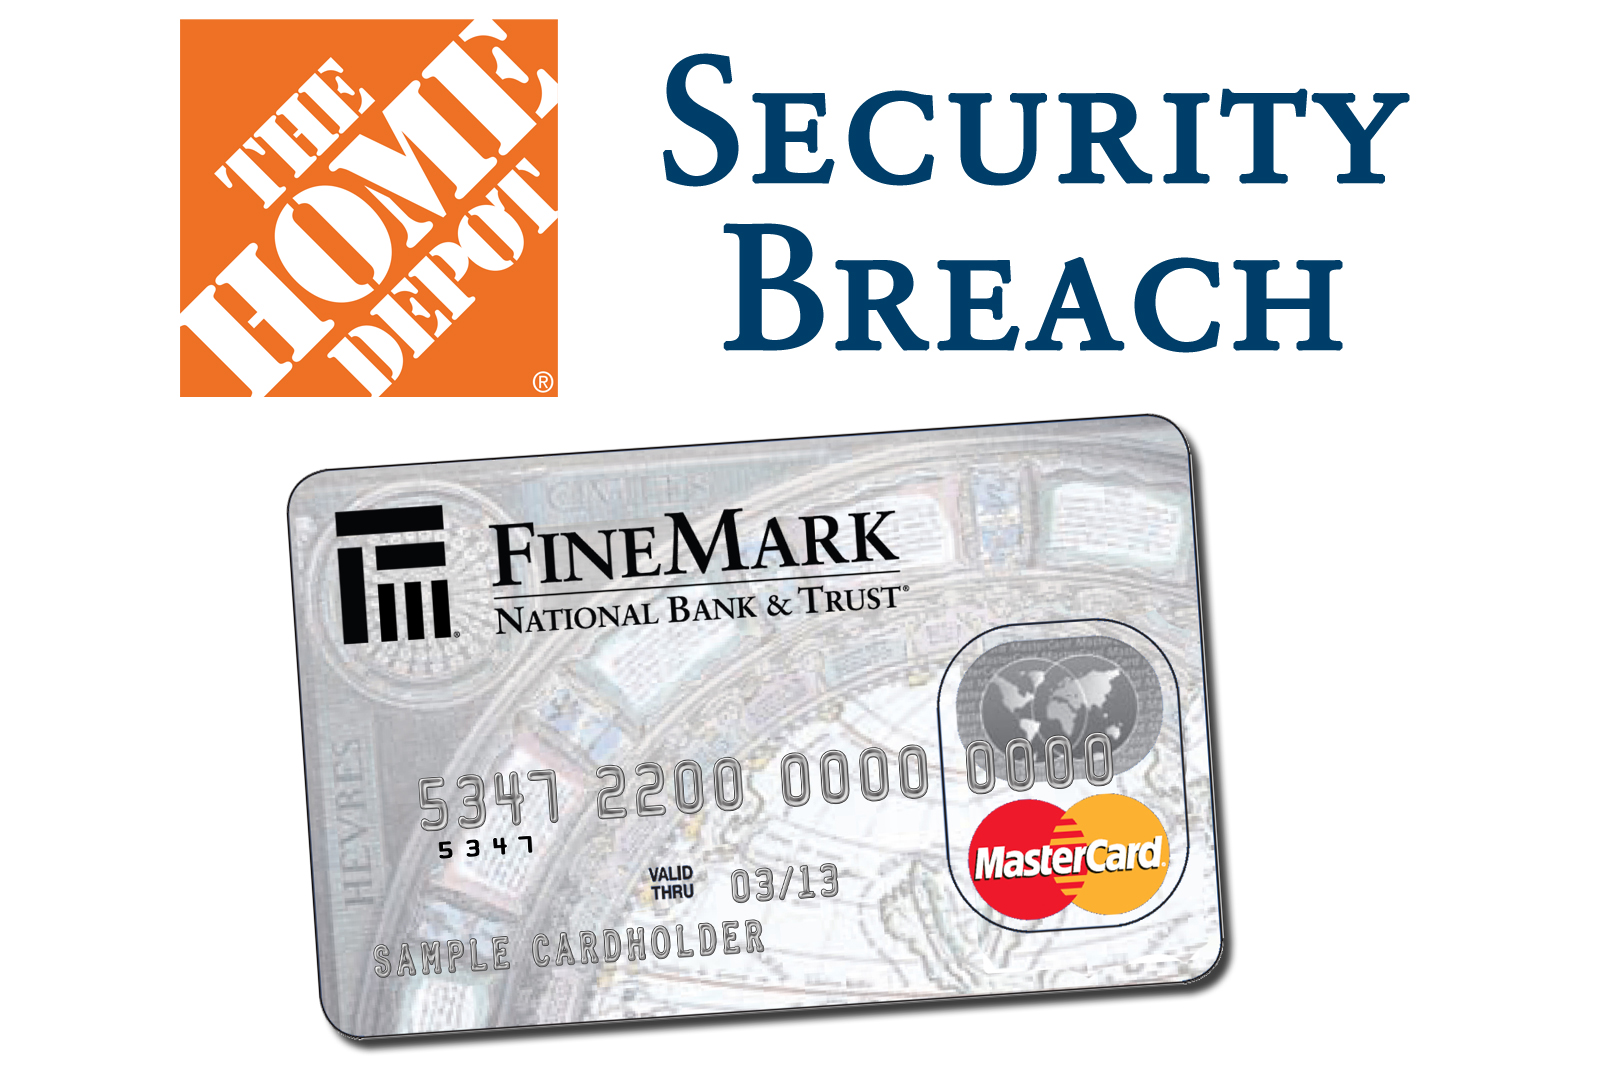 Bank Home Depot Home Depot Security Breach Finemark Bank